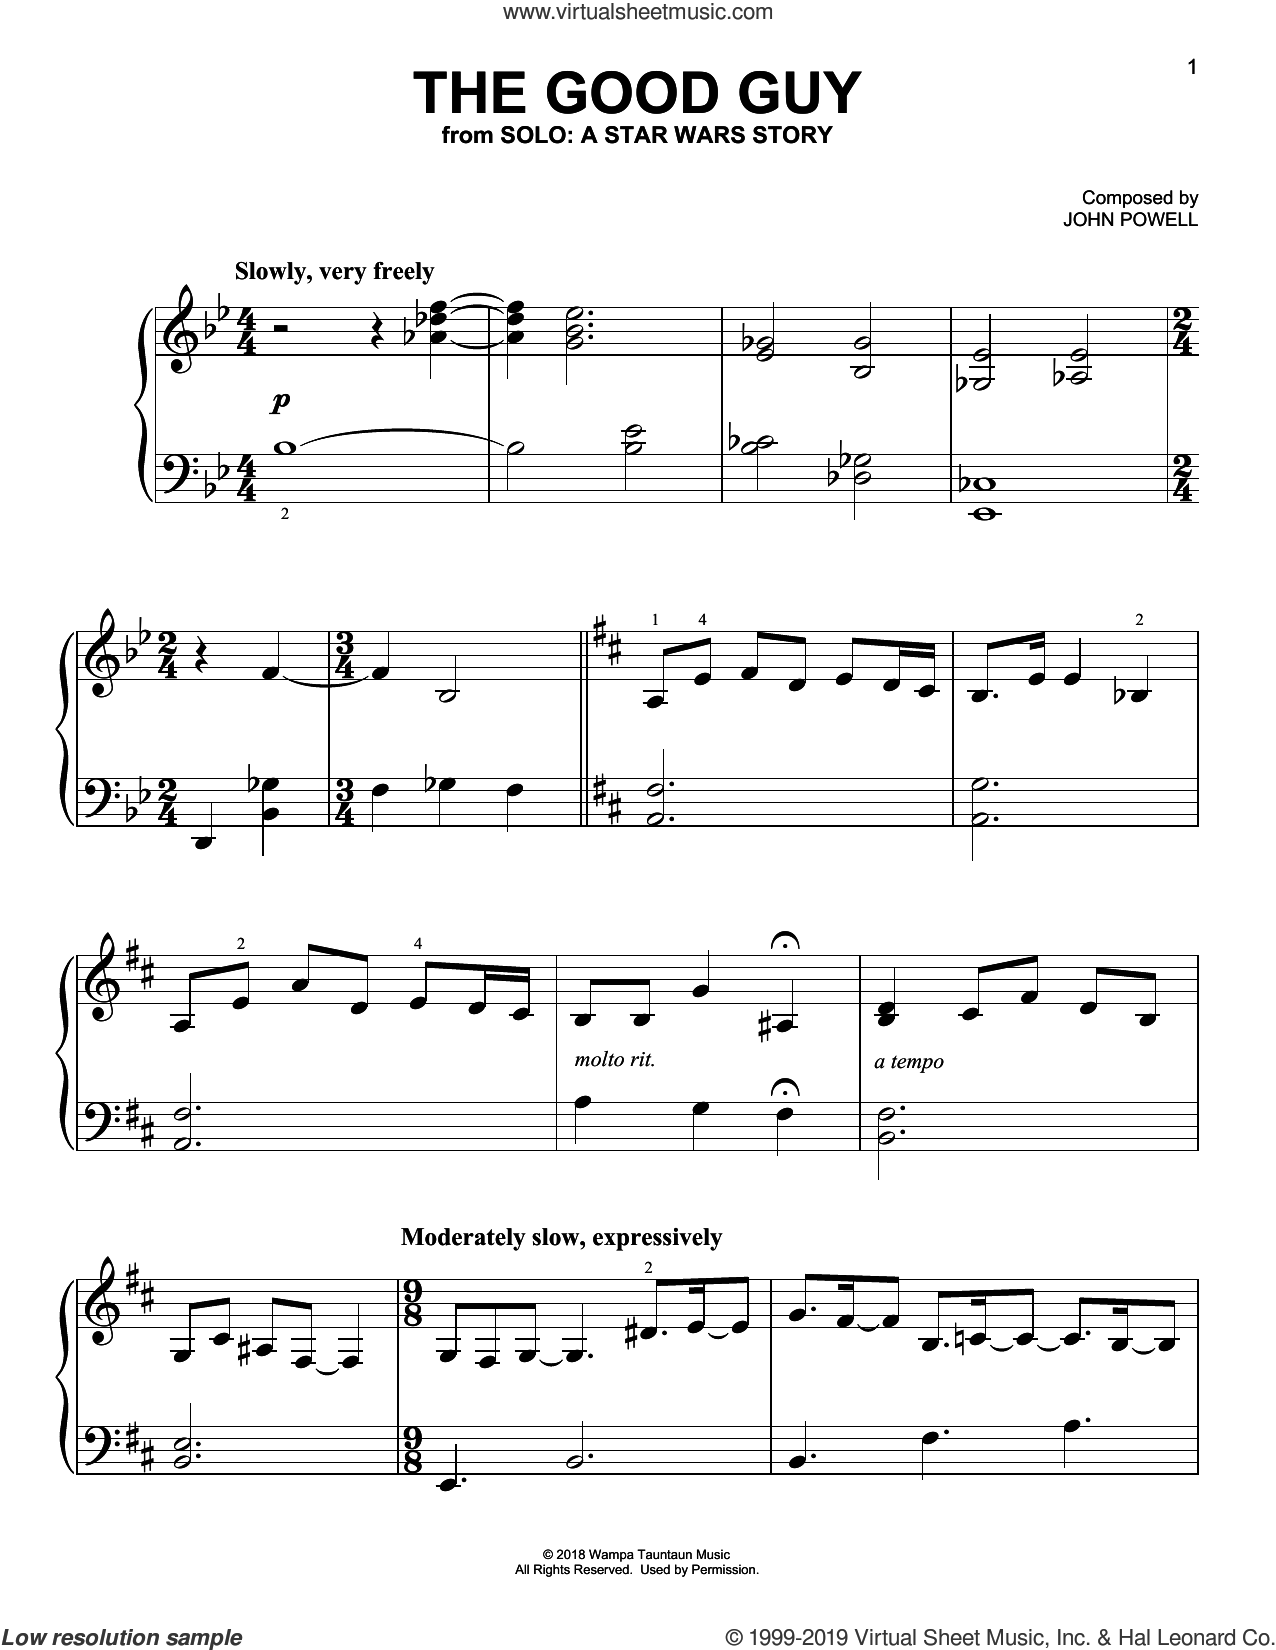 The Good Guy (from Solo: A Star Wars Story) sheet music for piano solo by John Powell, classical score, easy skill level